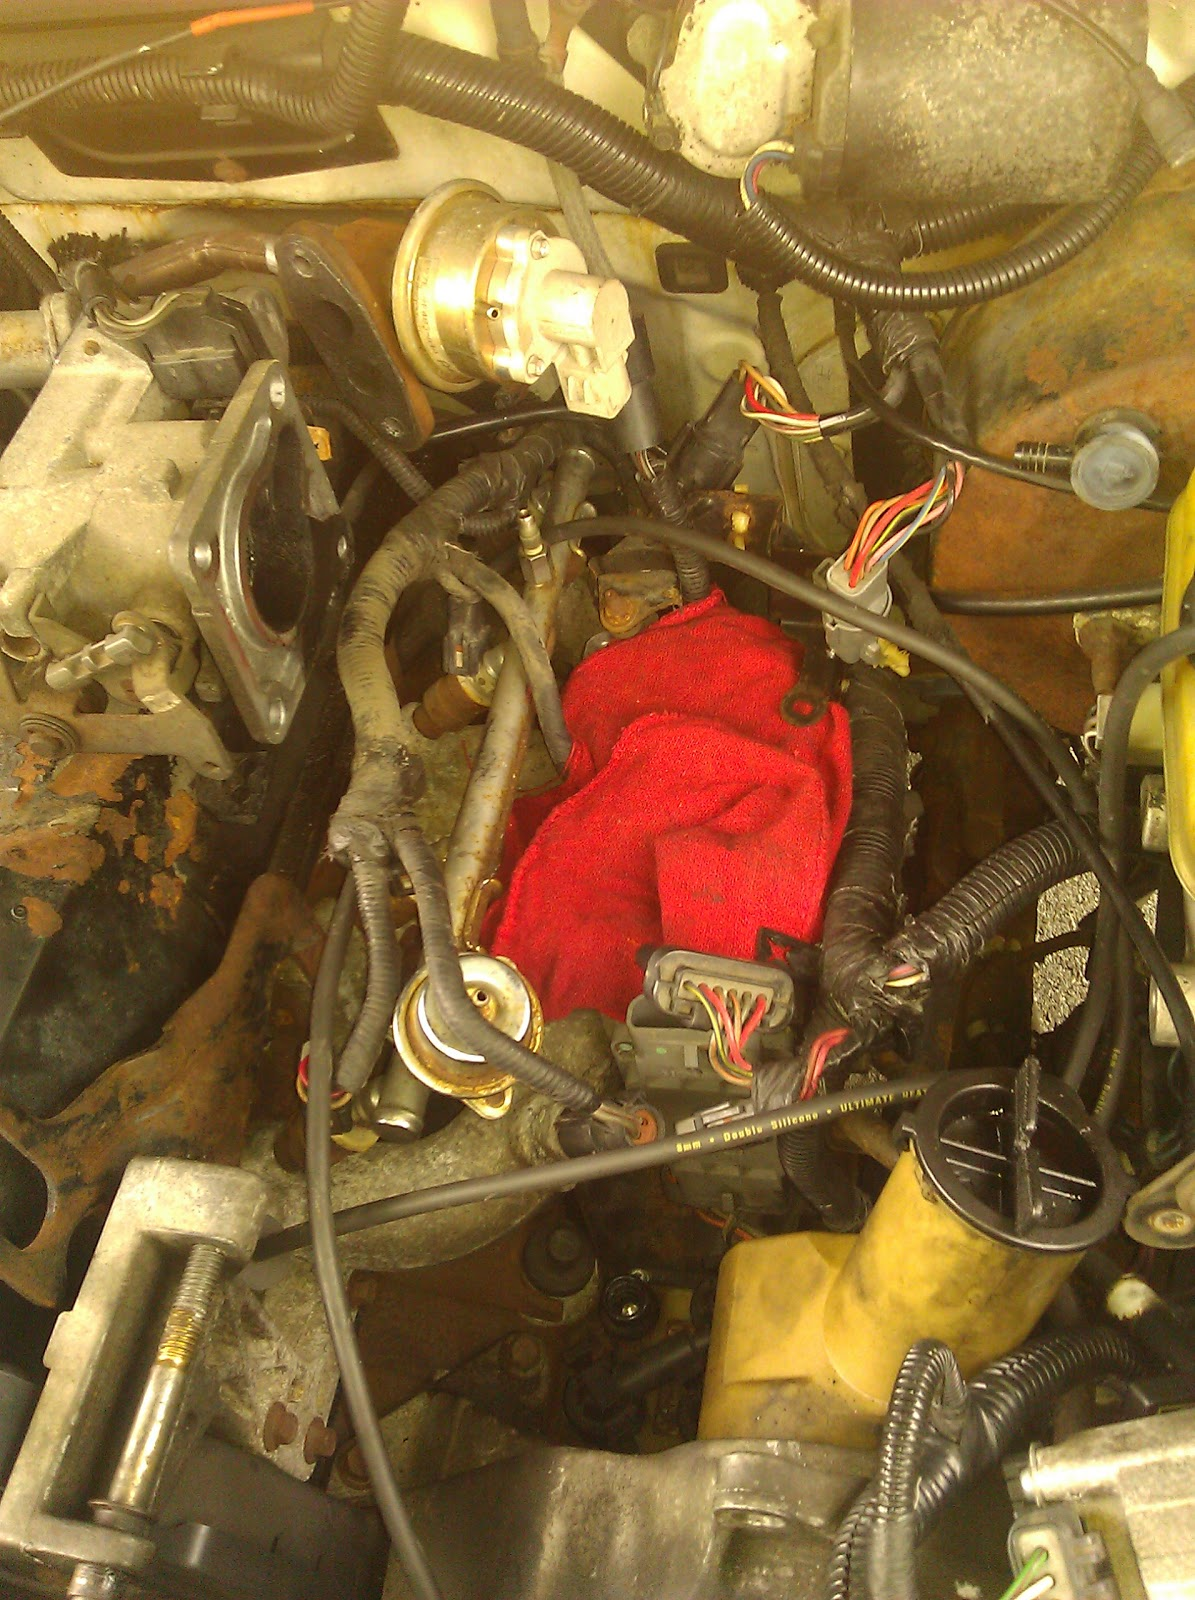 Wires New Ignition Spark Plug Wire Set Complete for 95-01 Ranger ...